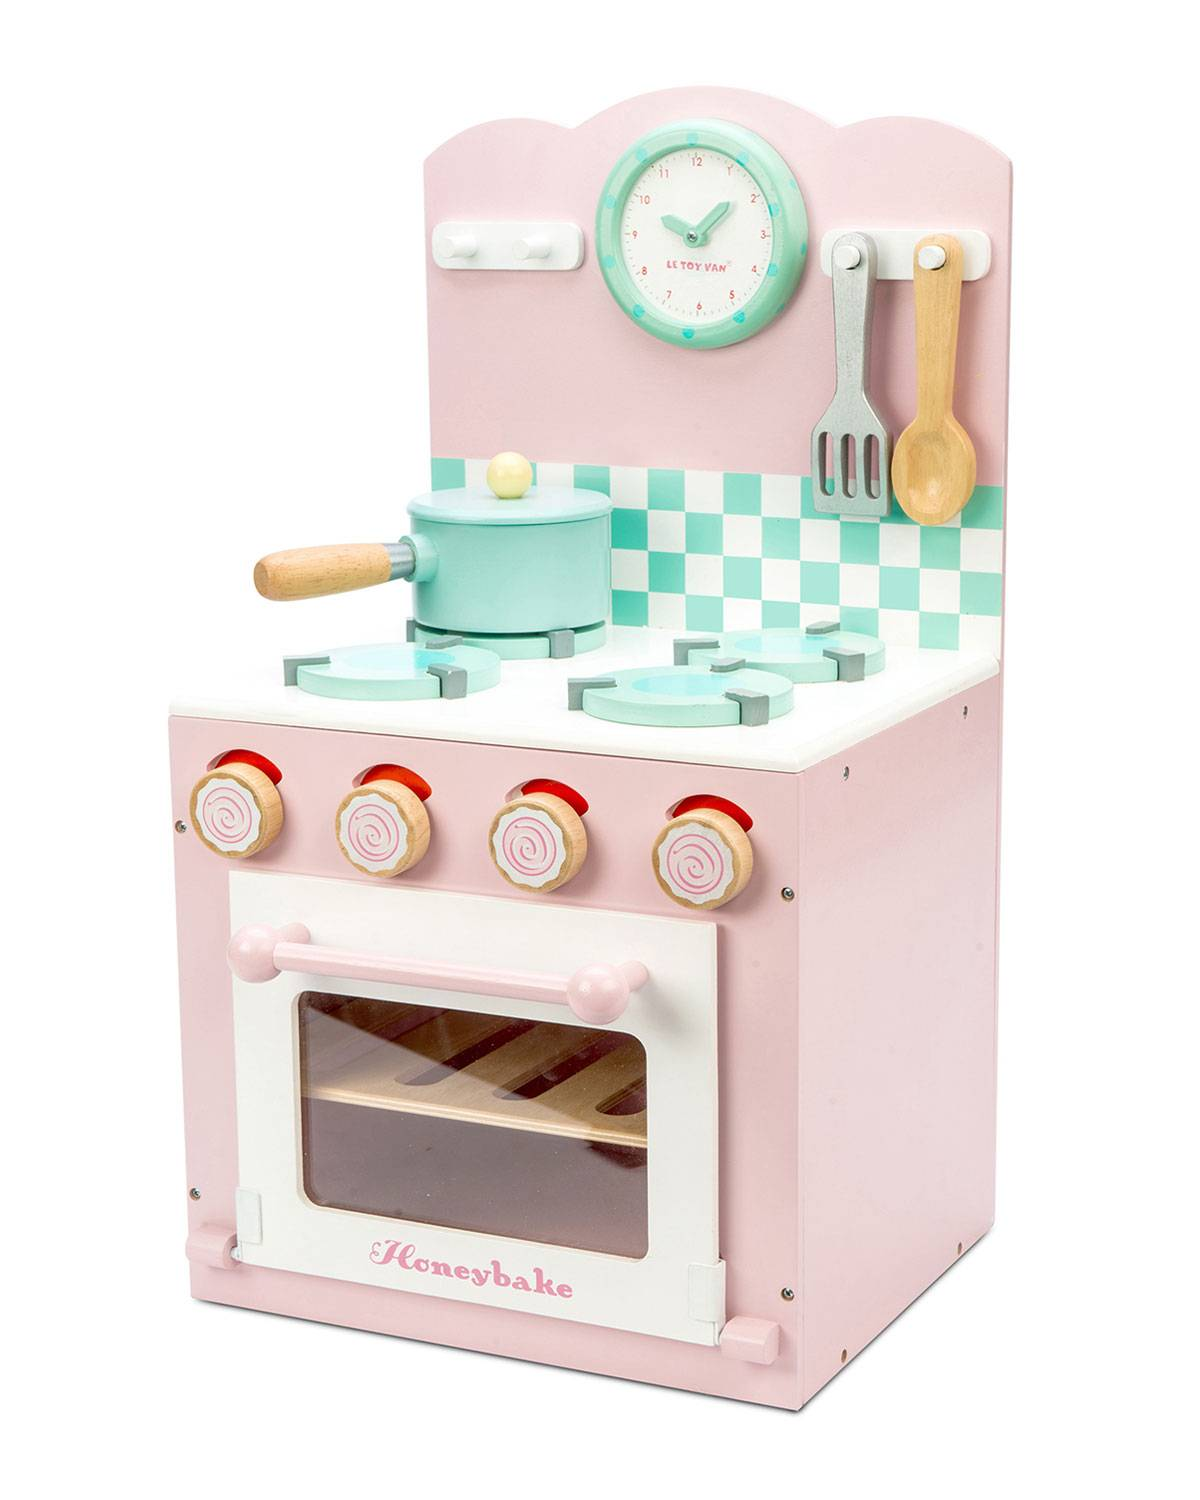 Le Toy Van Oven and Hob Furniture Set  - Size: unisex